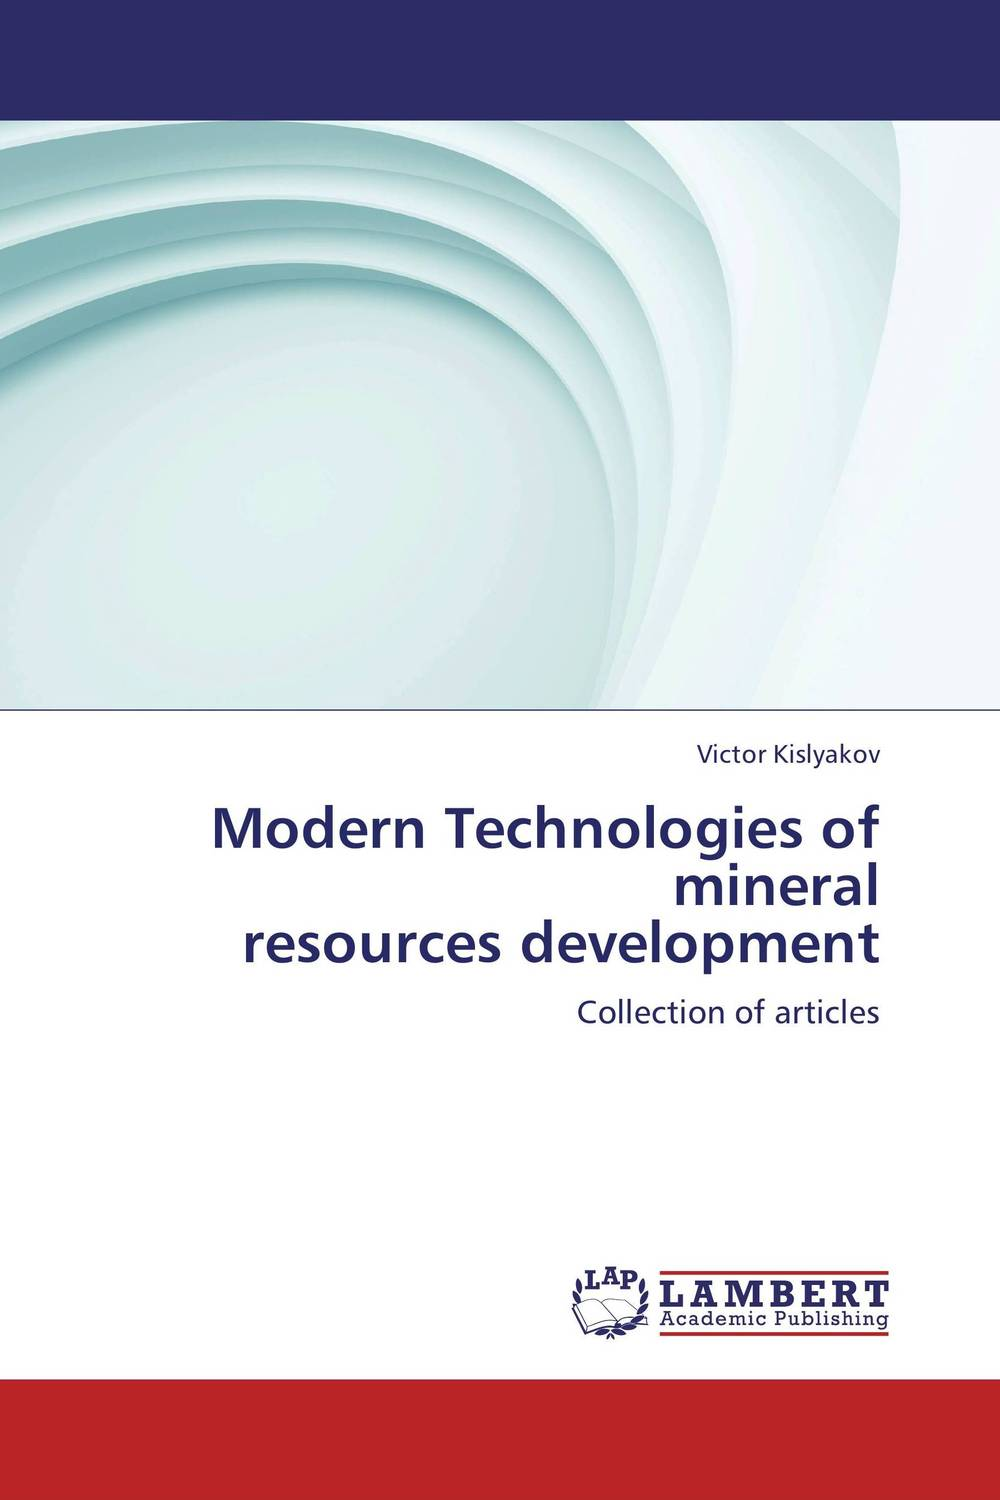 Modern Technologies of mineral resources development